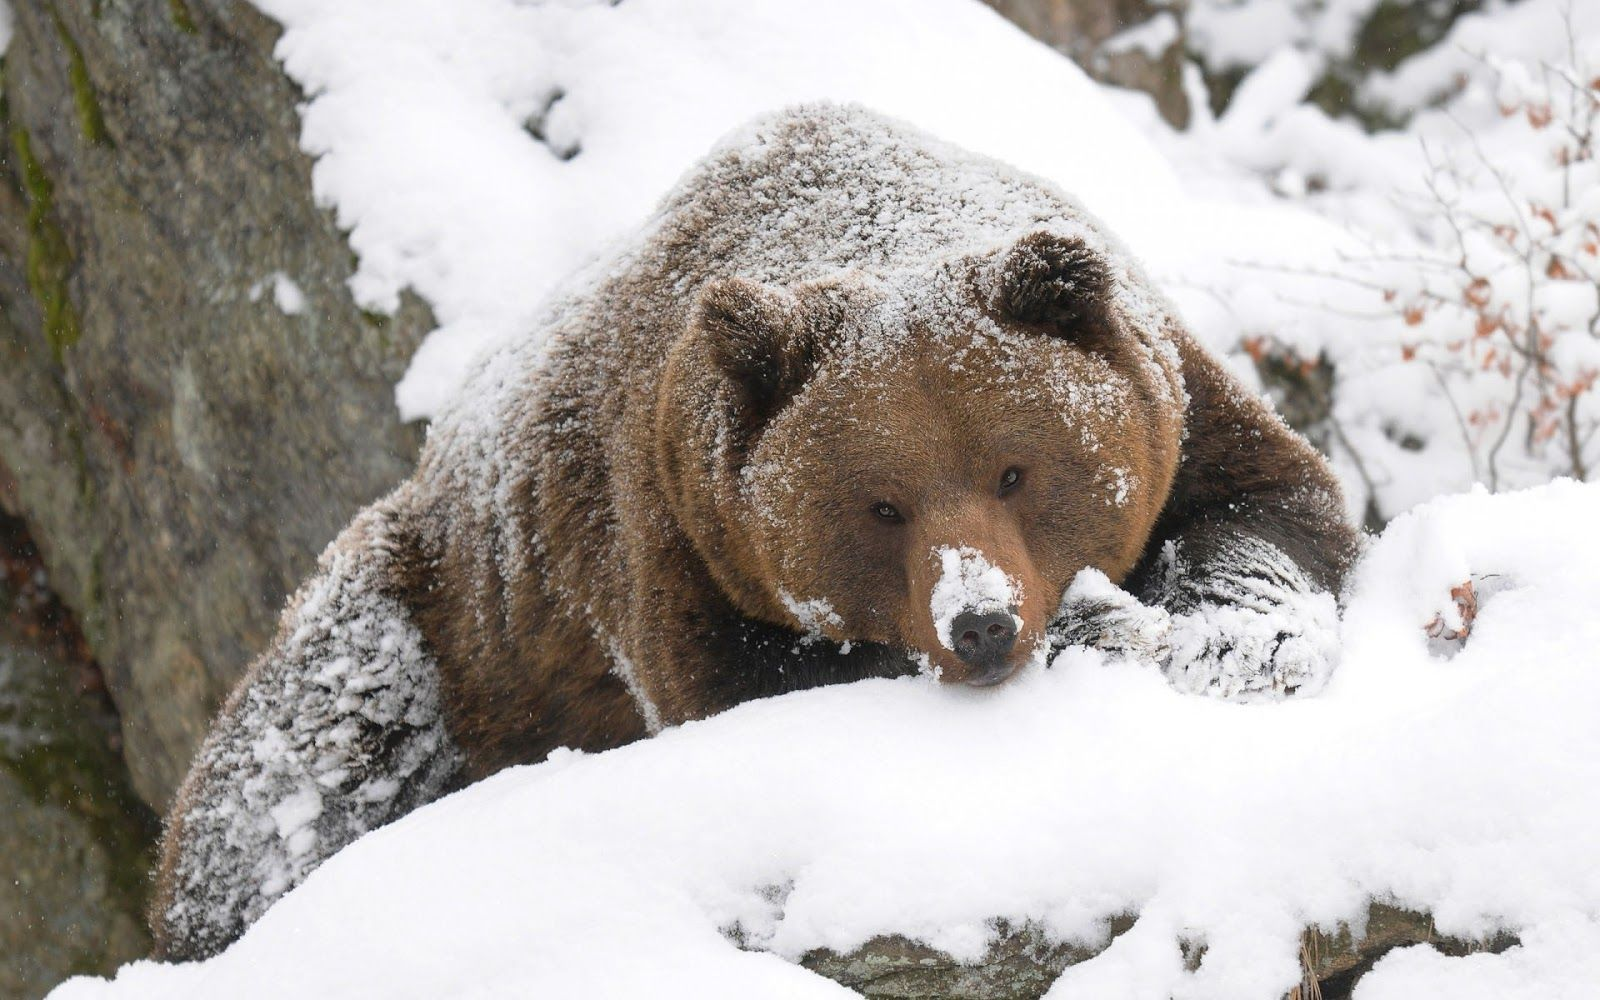 winter bear beautiful wallpaper of a grizzly bear. Black Bedroom Furniture Sets. Home Design Ideas